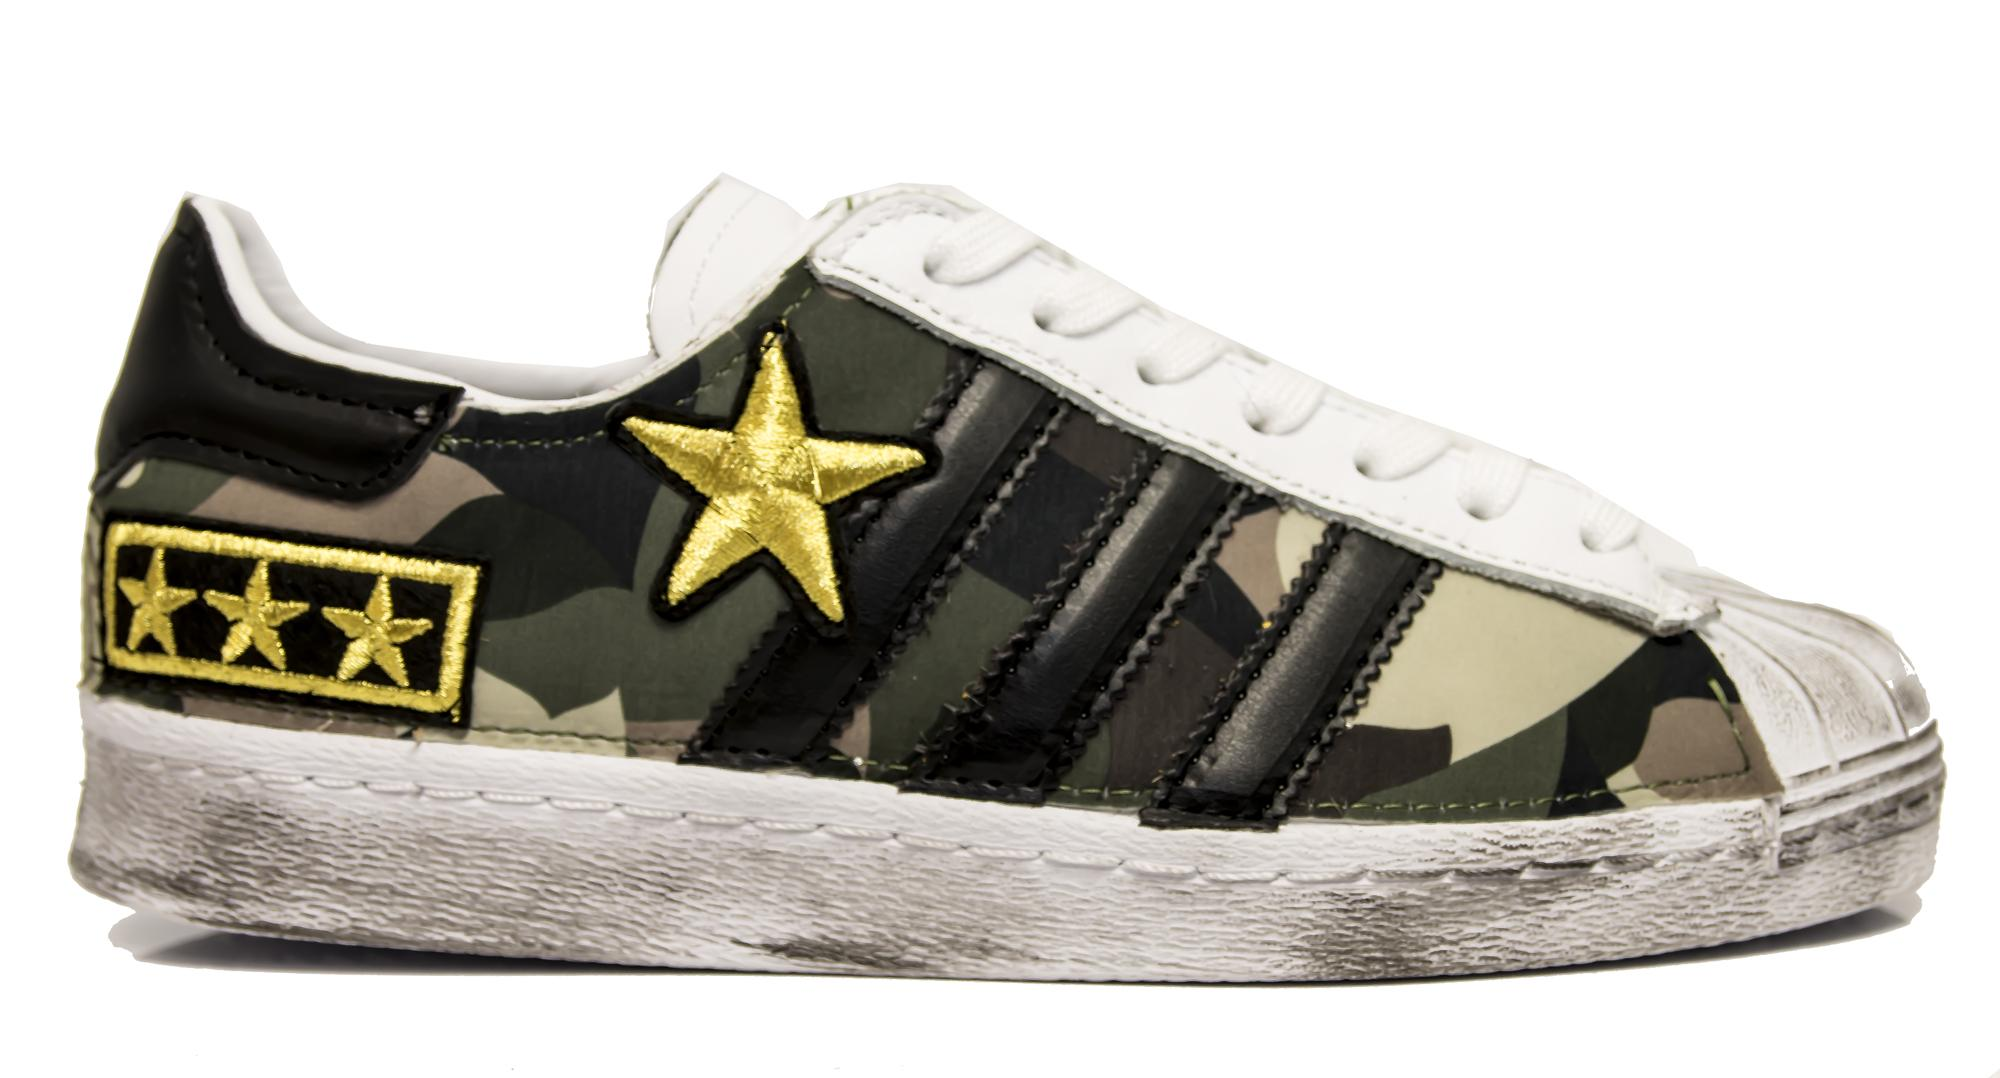 24a4e02e2f745 Sneakers Adidas Superstar MILITARY personalizzate in tessuto camouflage e  patch